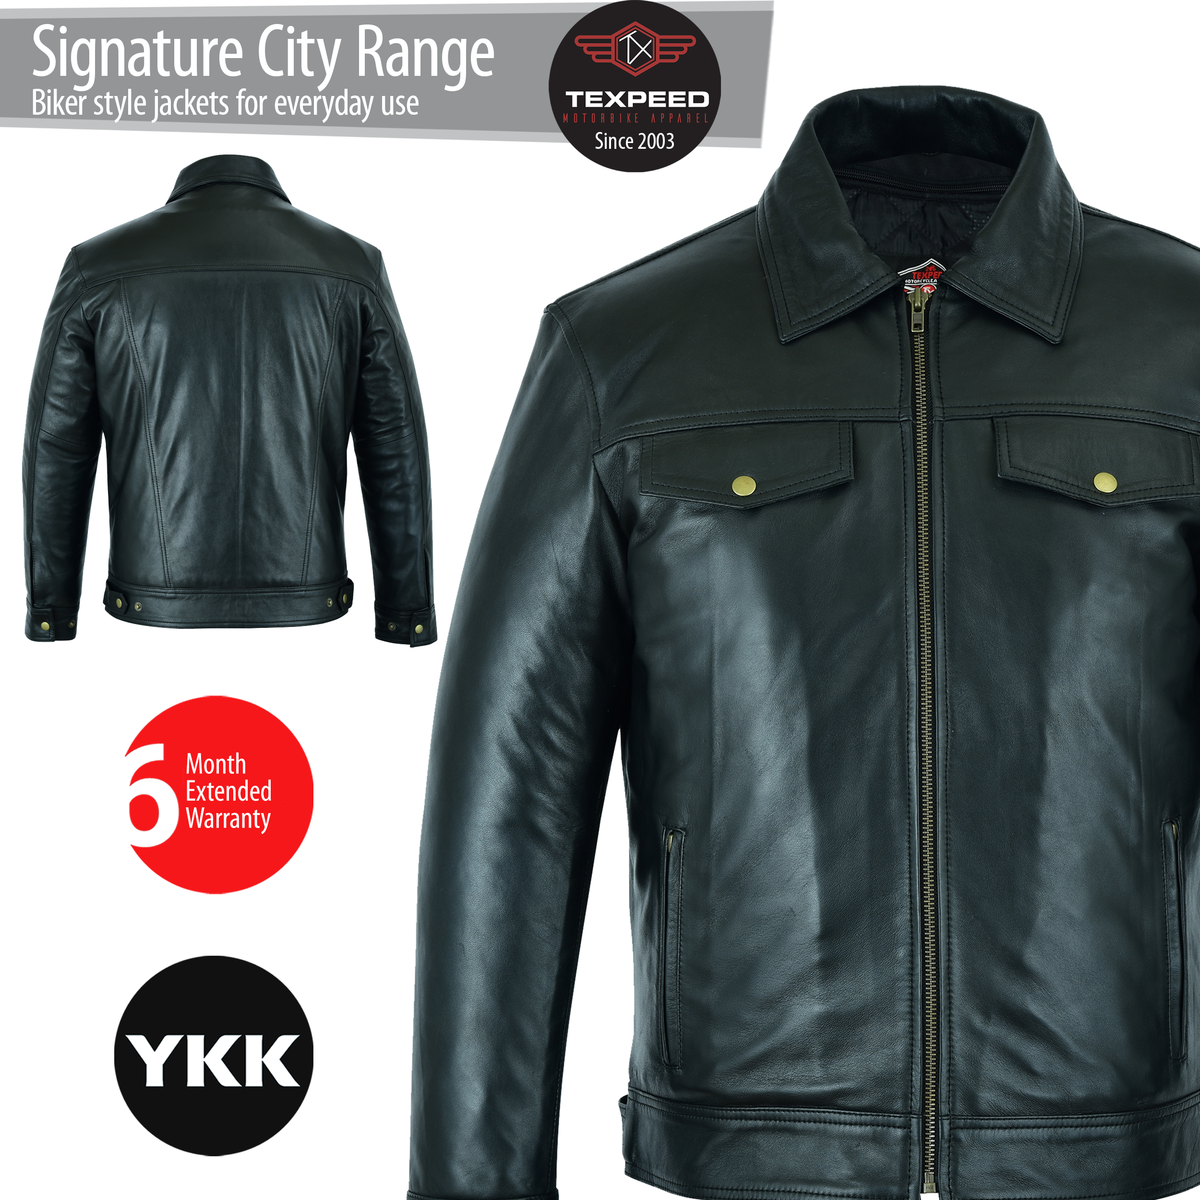 Texpeed Biker Fashion Shirt Jacket - In Black Soft Touch Leather